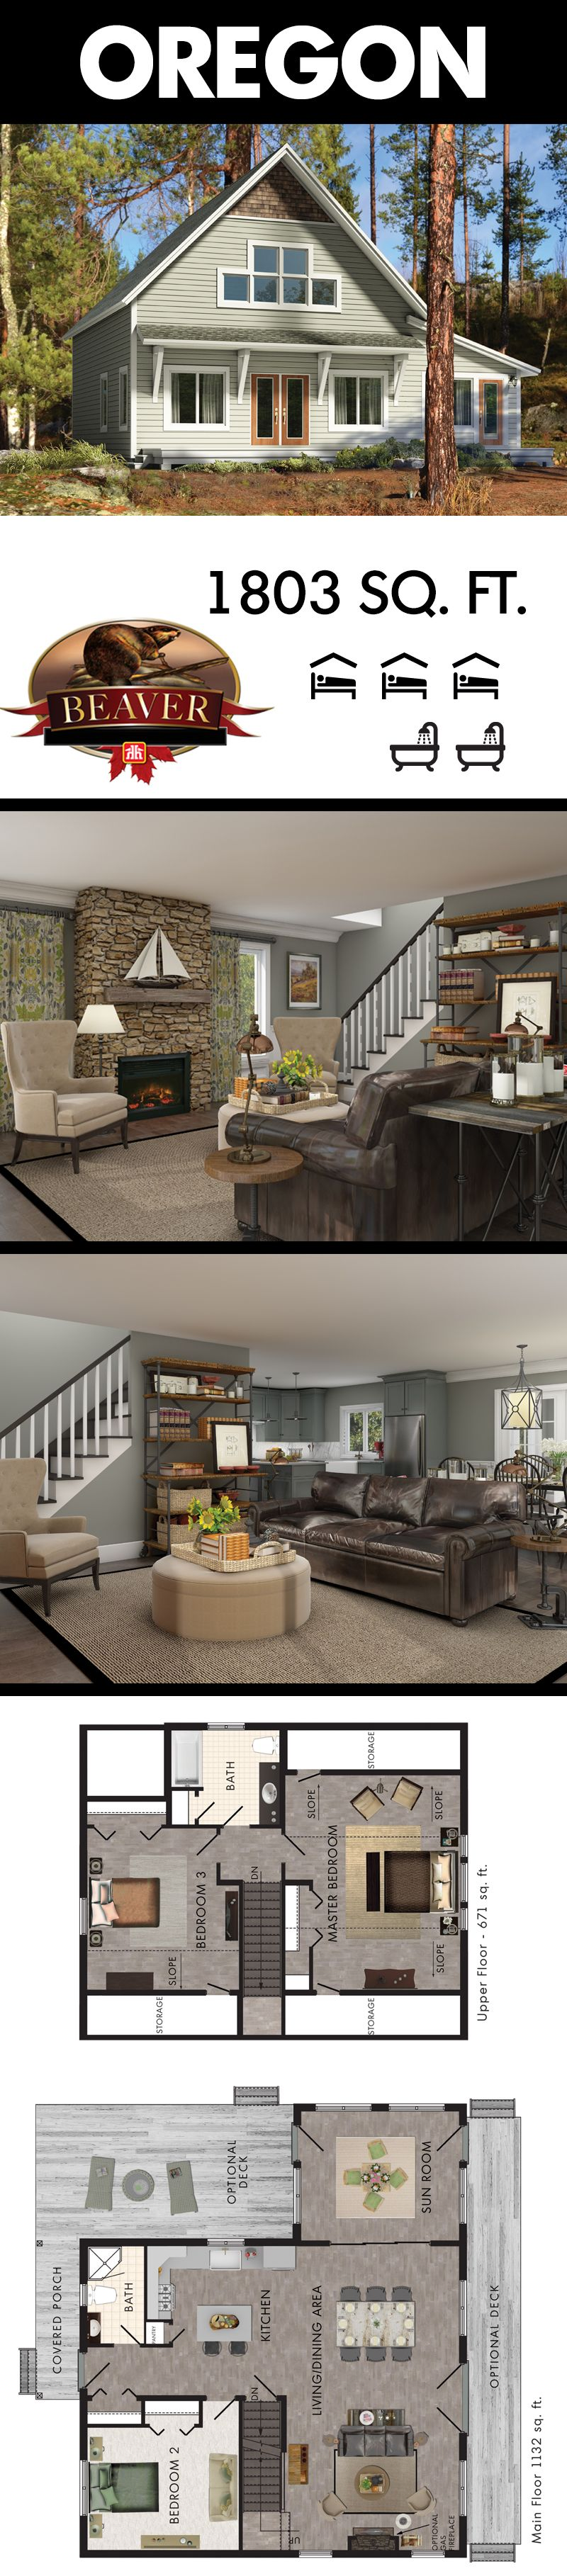 Check out the charming covered porch of Beaver Homes & Cottages' Oregon model.